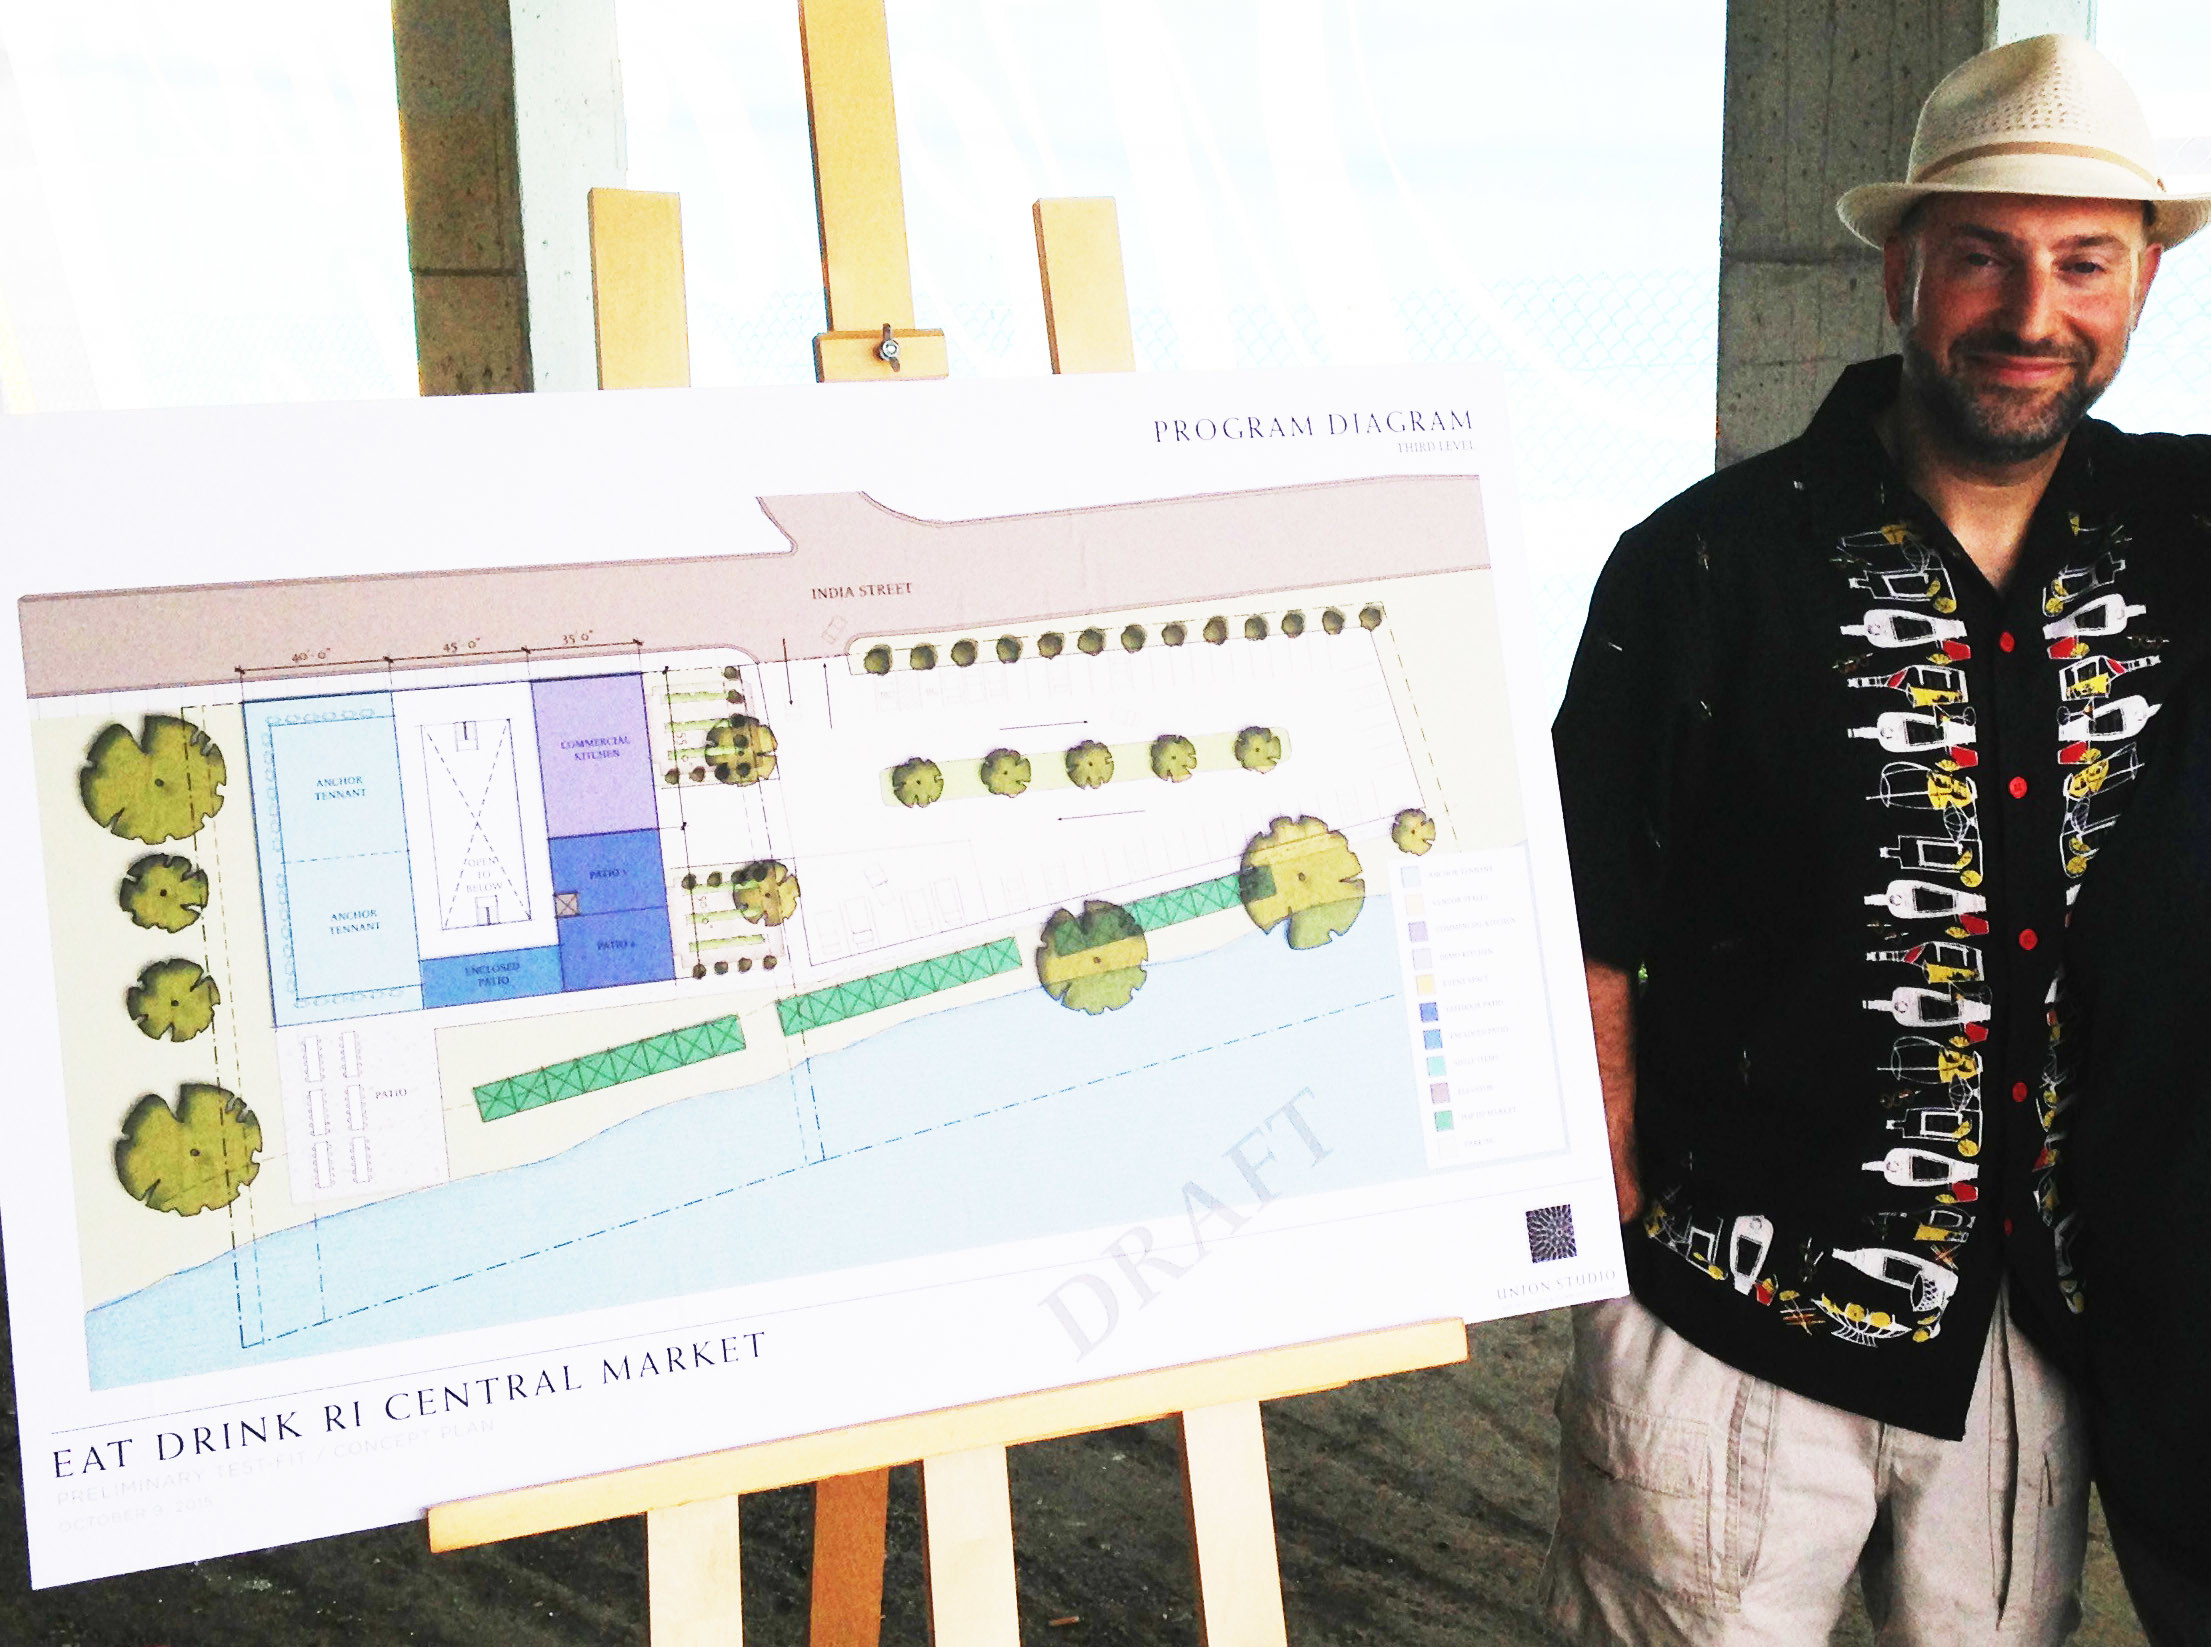 David Dadekian of Eat Drink RI, at the pop up market held on Aug. 6 to support the plans to build a Central Market as a hub for Rhode Island food entrepreneurs on the Providence waterfront, next to the draft architectural plans.